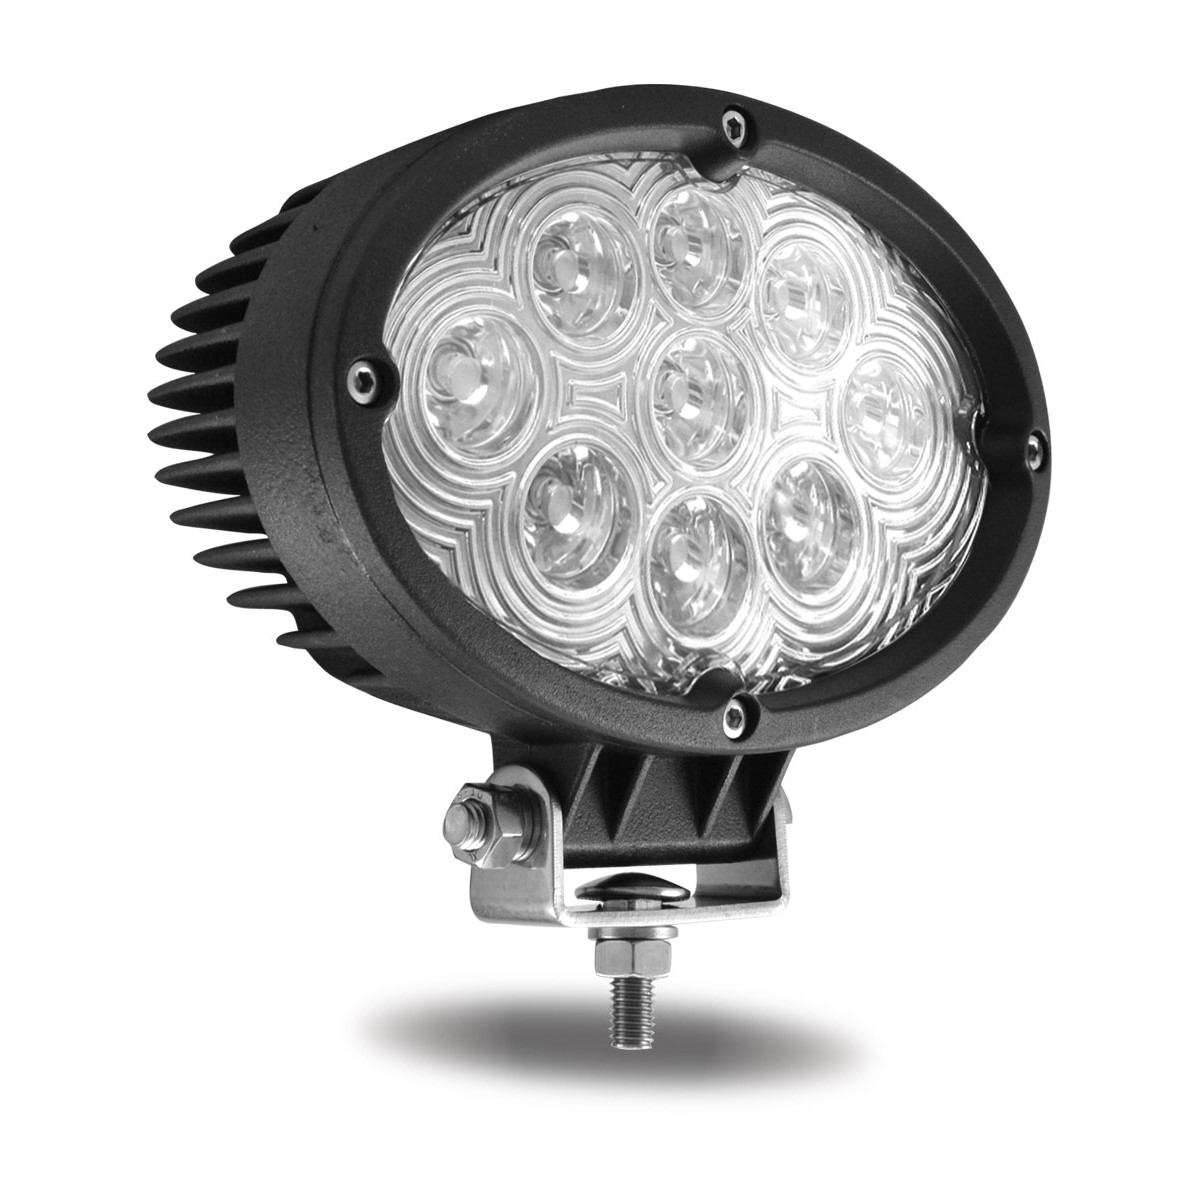 6 Quot Oval High Powered Led Work Lamp Spot Beam 900 Lumens